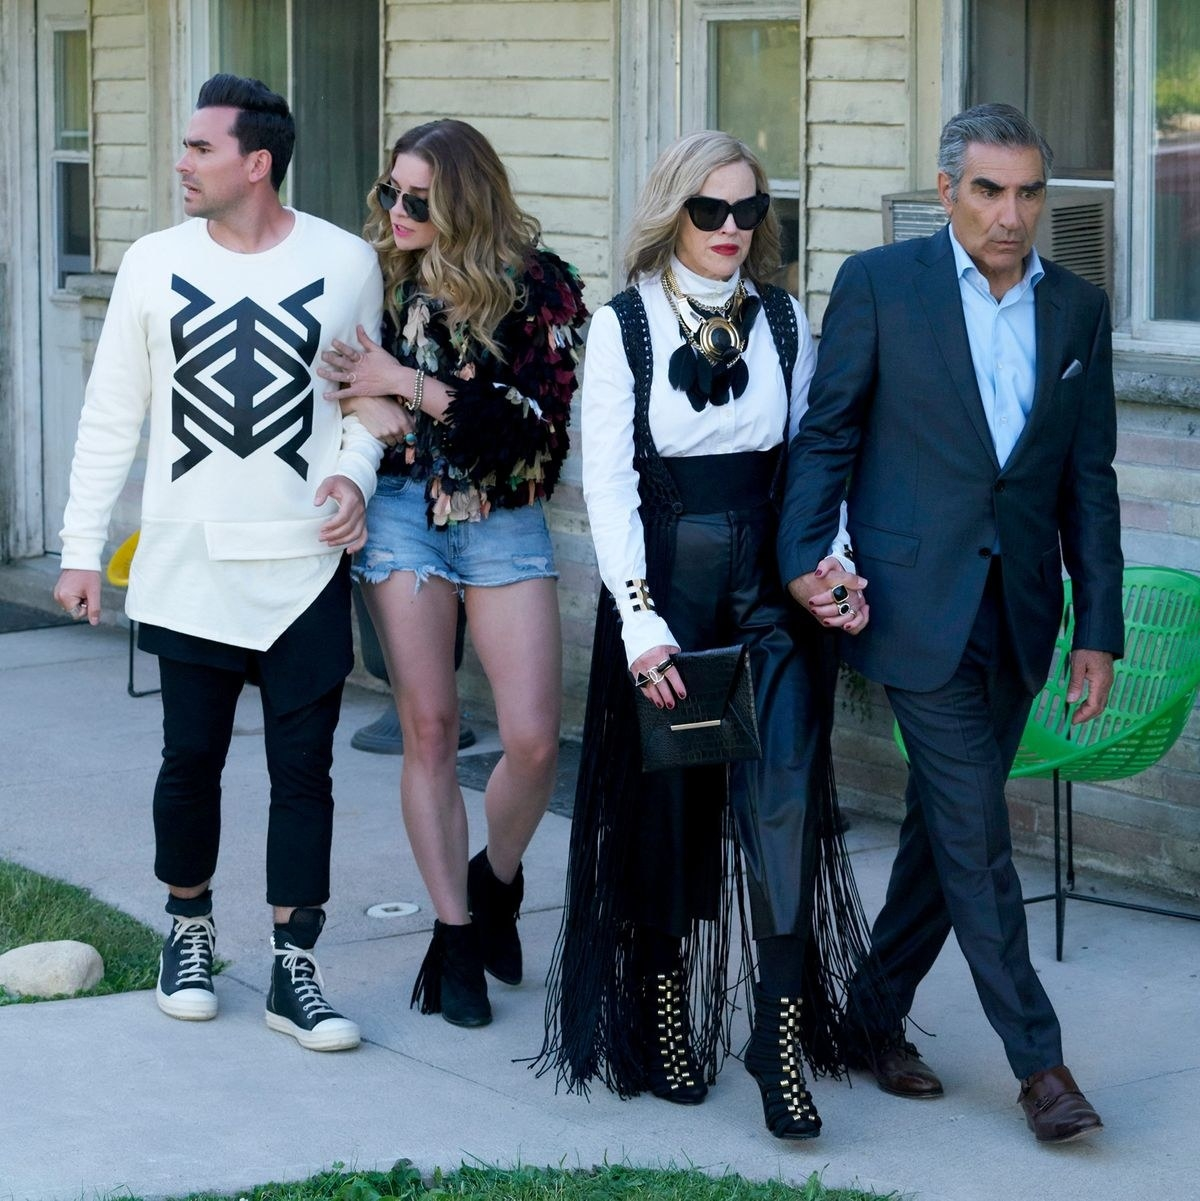 The Rose family walks around Schitt's Creek for the first time in disgust